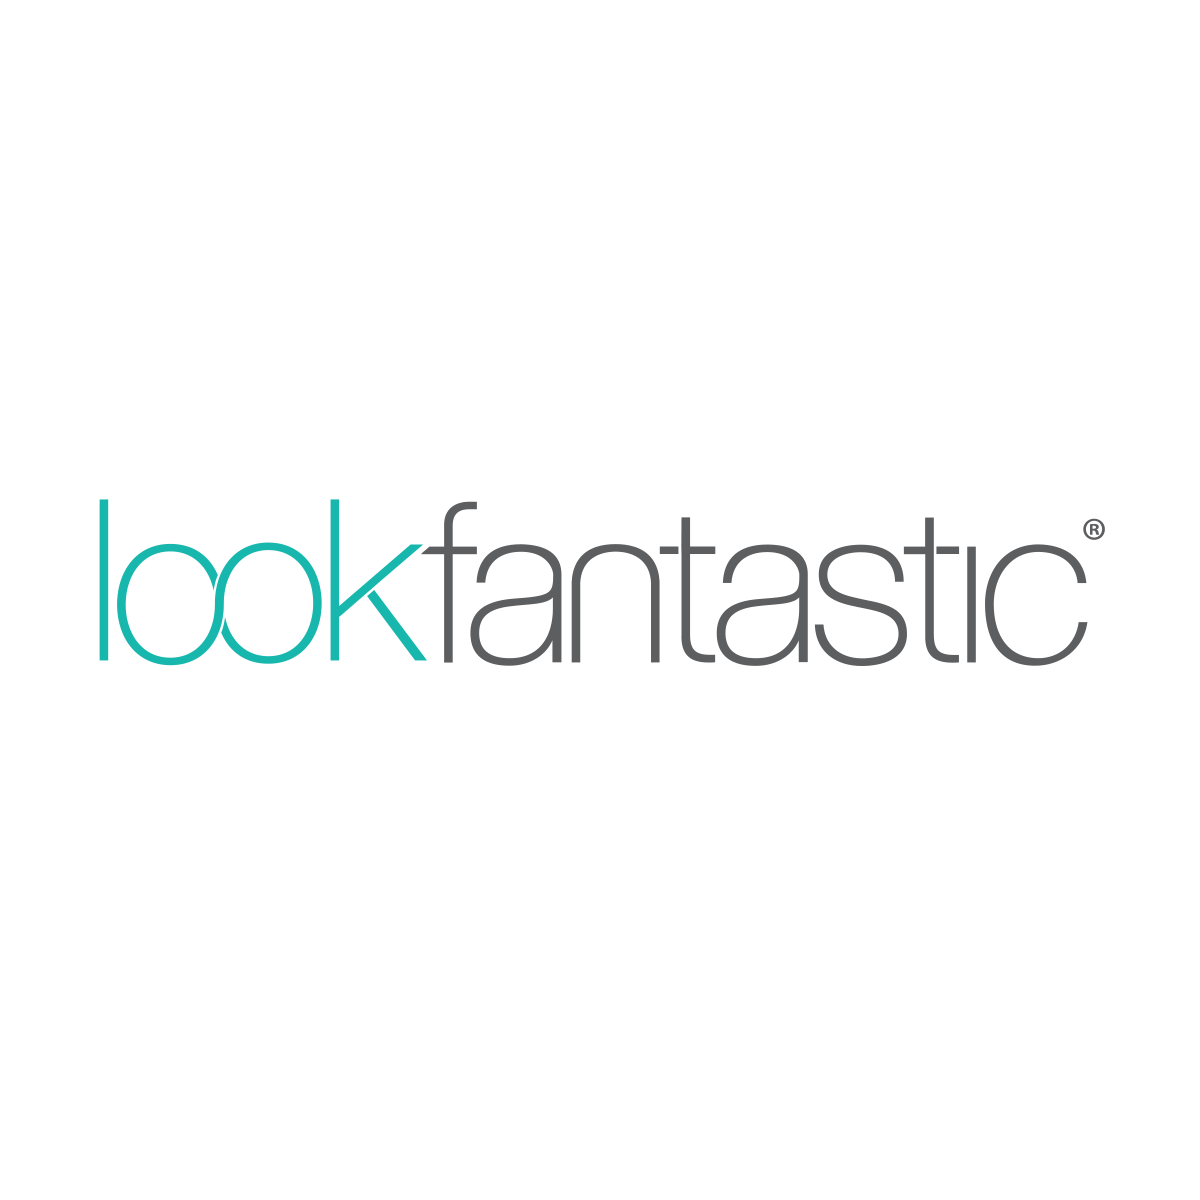 Lookfantastic | 40% off 2nd premium beauty product.